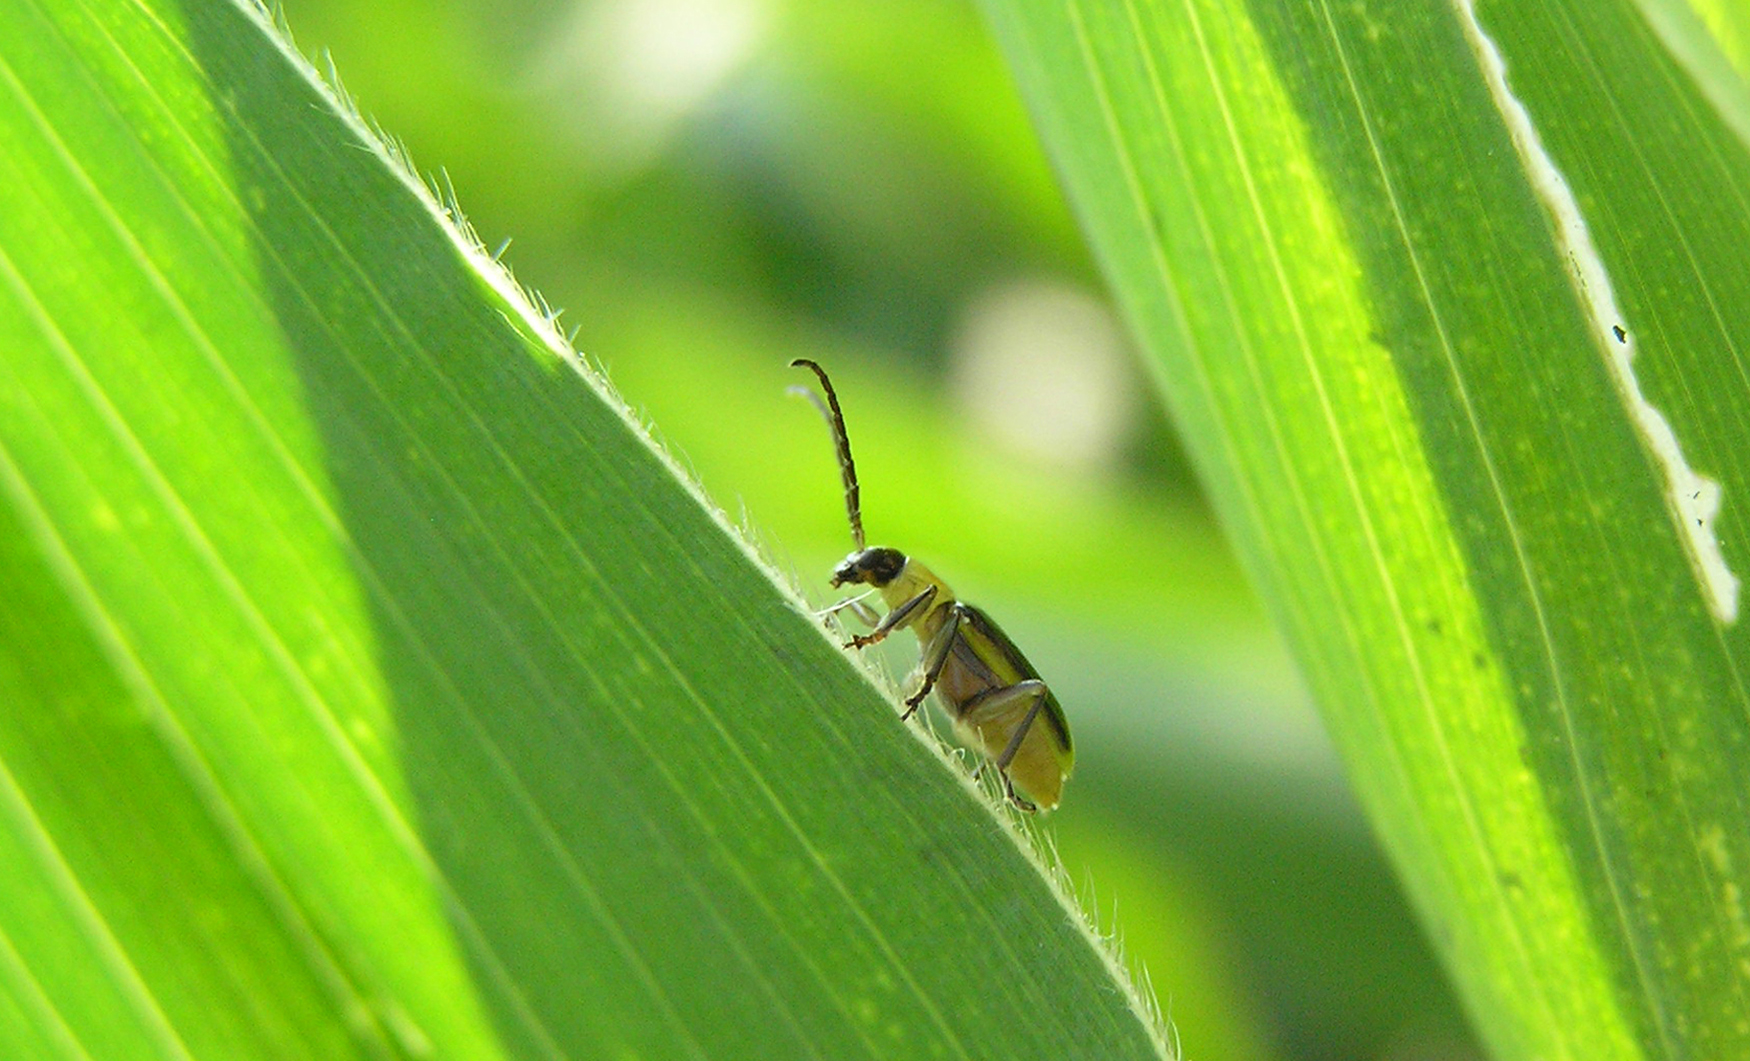 An adult Western corn rootworm crawls on a corn leaf. Photo by Nick Lauter, USDA-ARS.